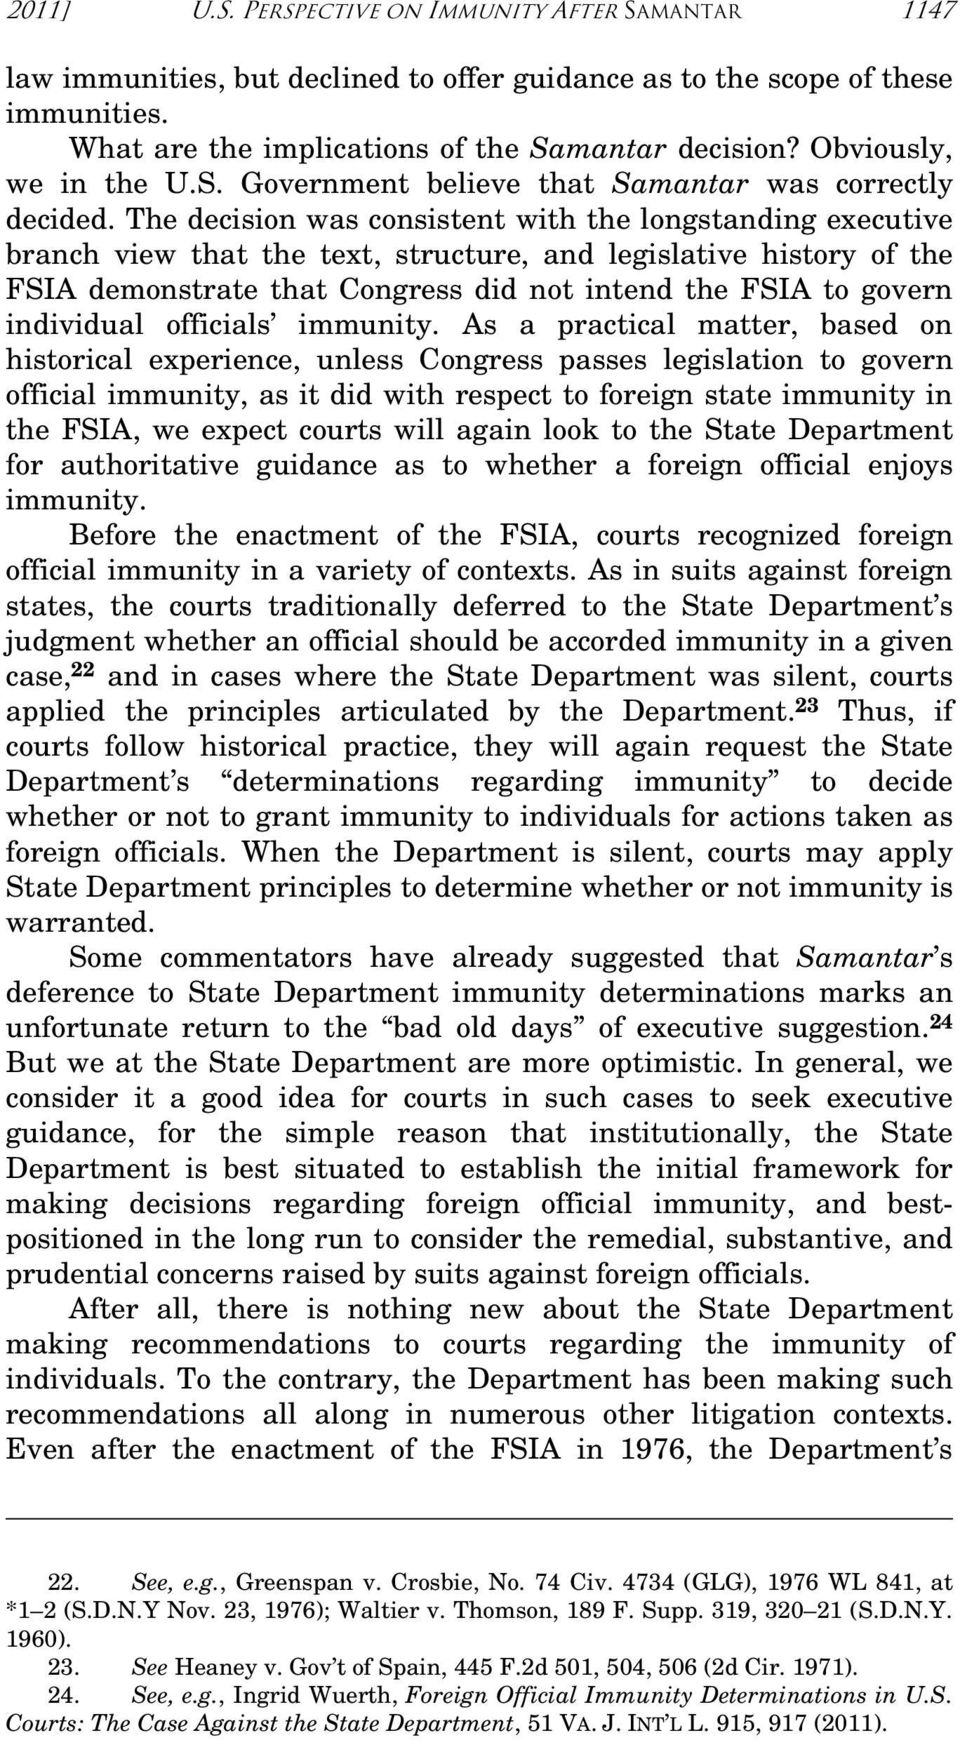 The decision was consistent with the longstanding executive branch view that the text, structure, and legislative history of the FSIA demonstrate that Congress did not intend the FSIA to govern